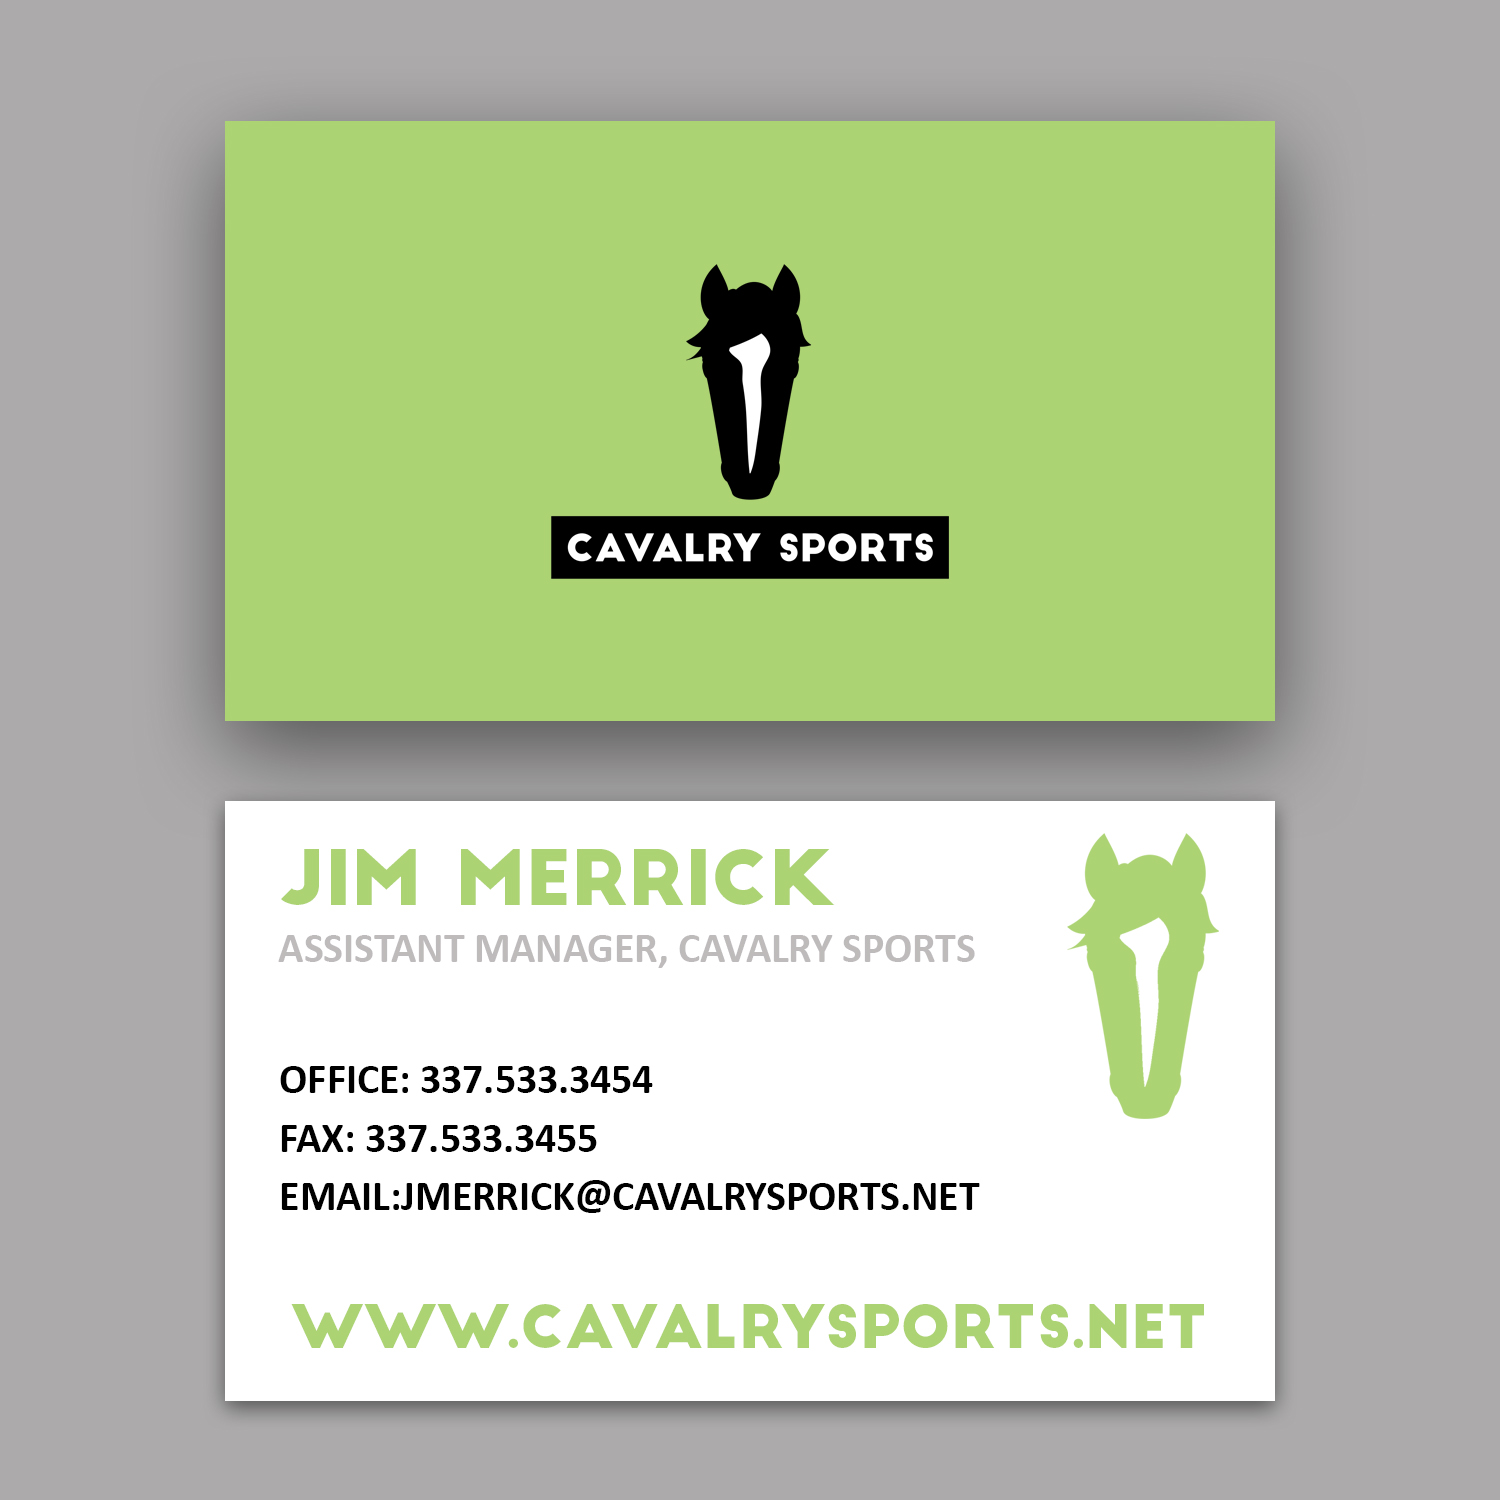 Cavalry Sports Business Card